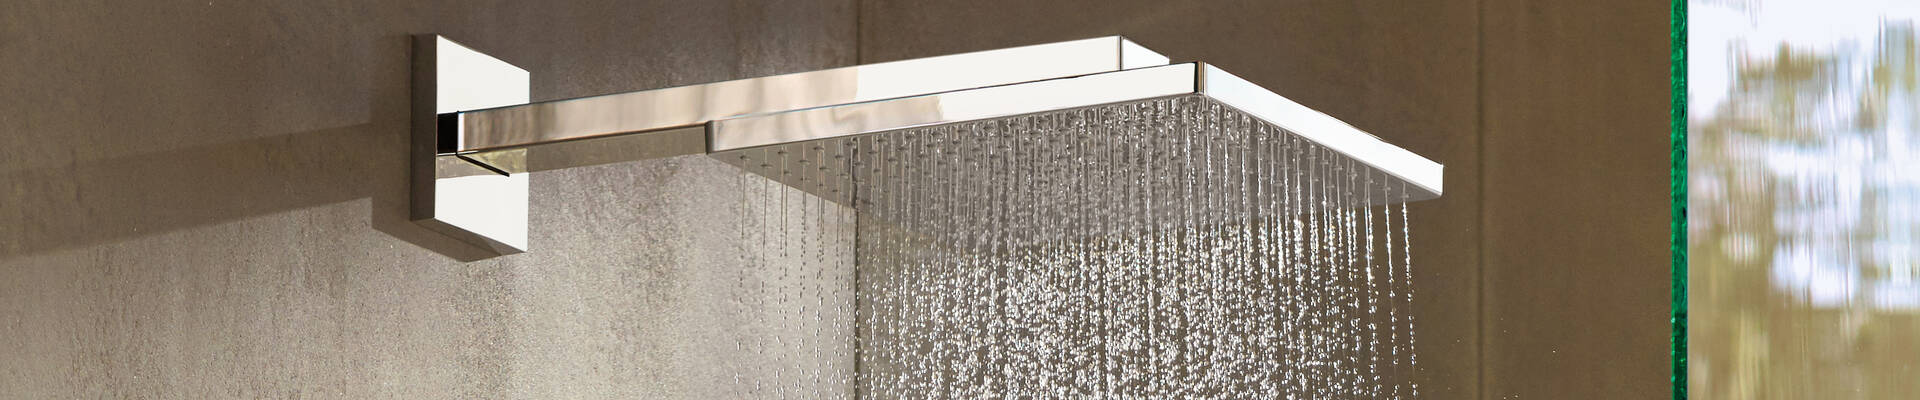 Hansgrohe Shower Head With Xl Rain